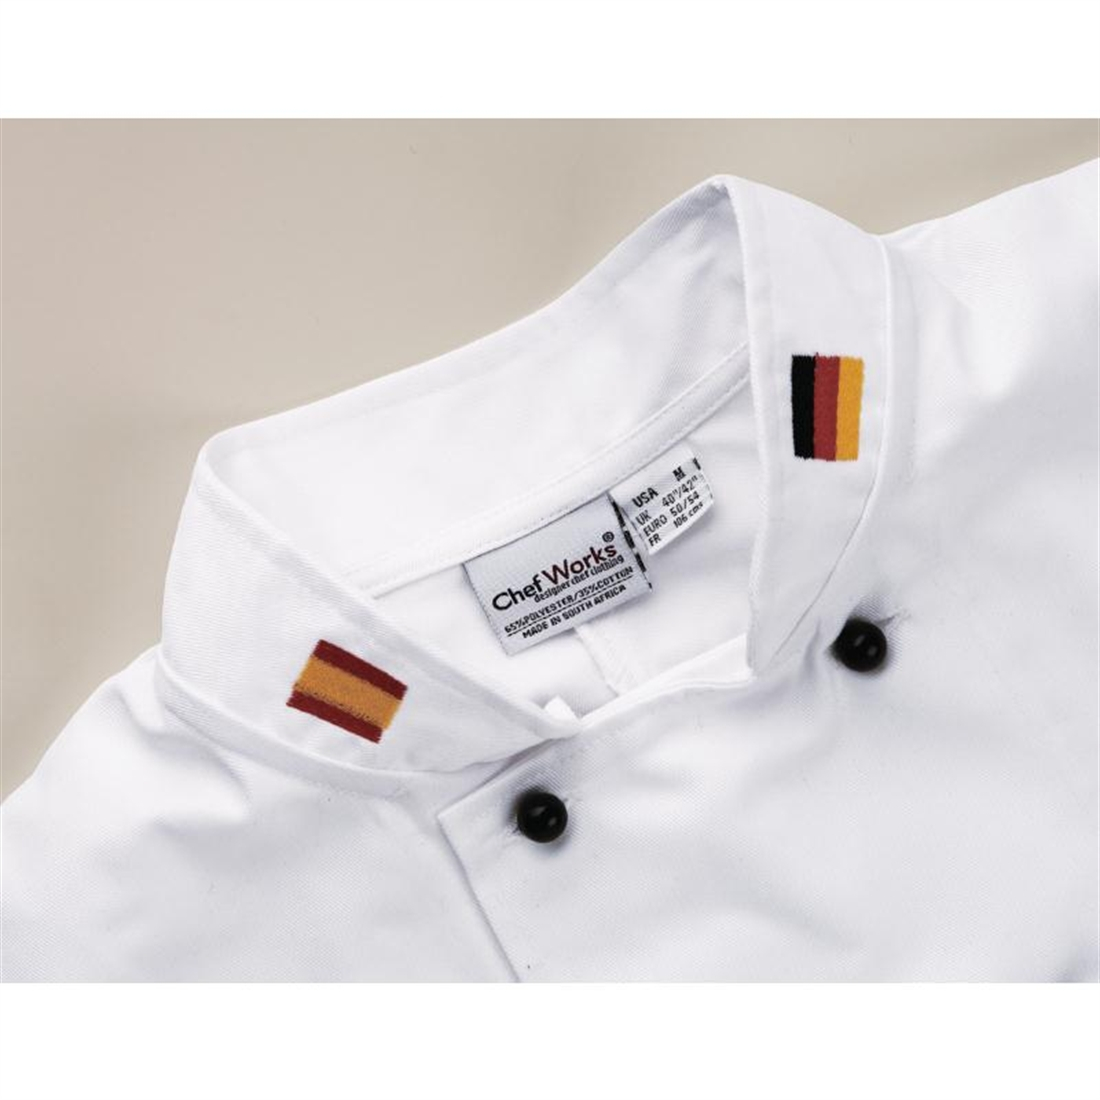 Embroidery Collar Flags